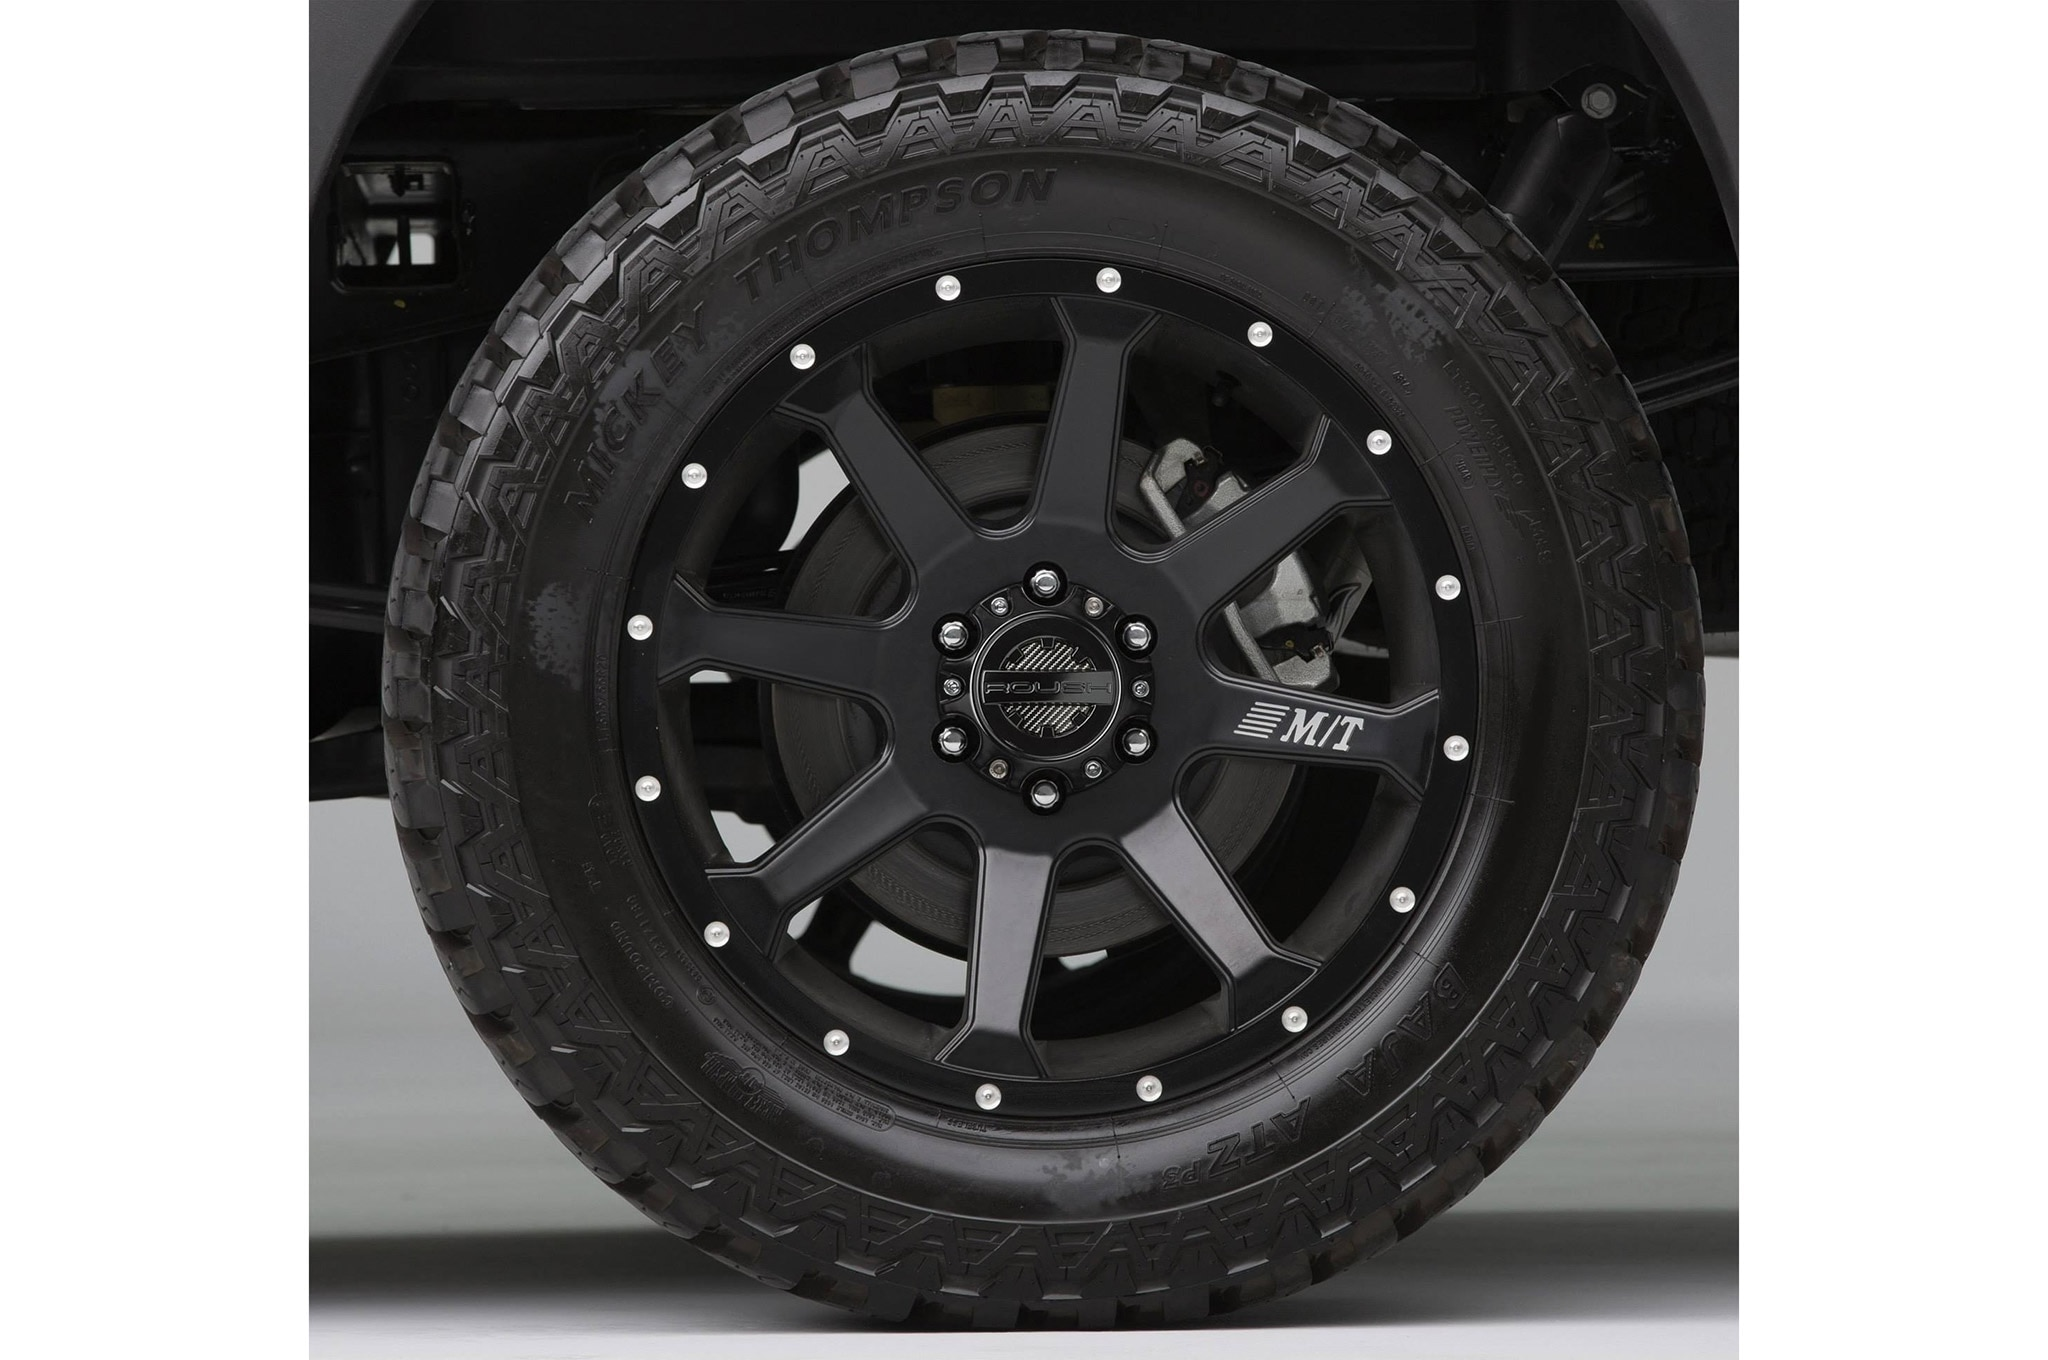 2015 Roush F150 Mickey Thompson Roush Wheels And Tires